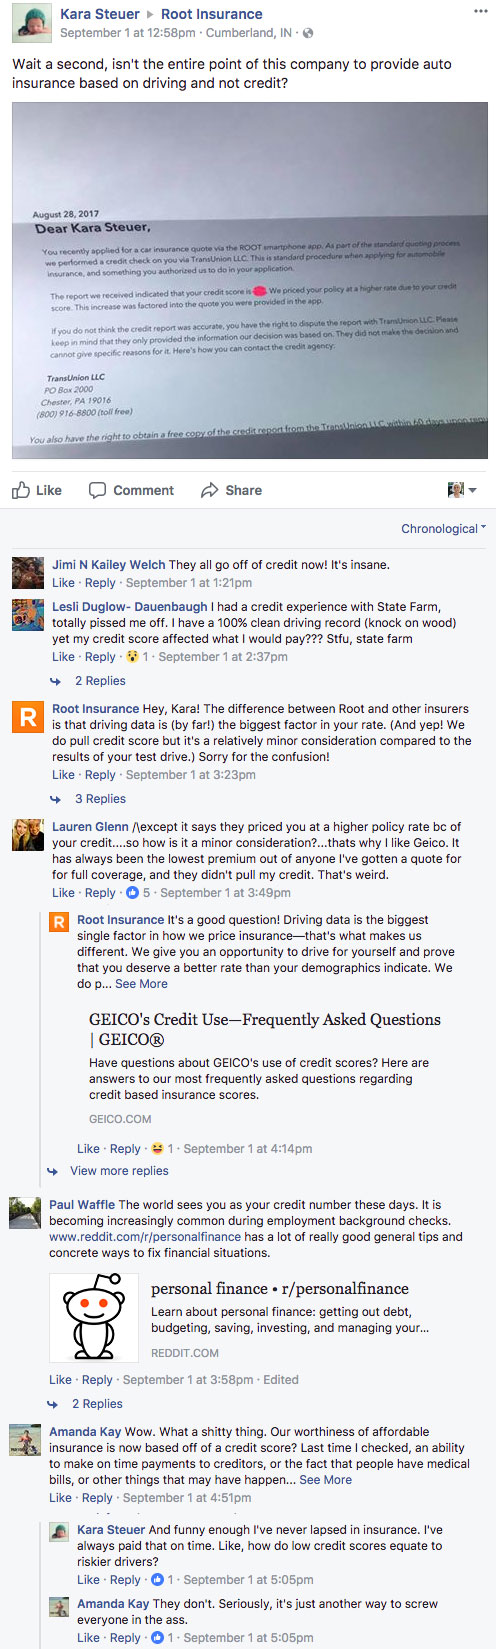 Kara Steuer Vs Root On Use Of Credit Scores To Price Premiums